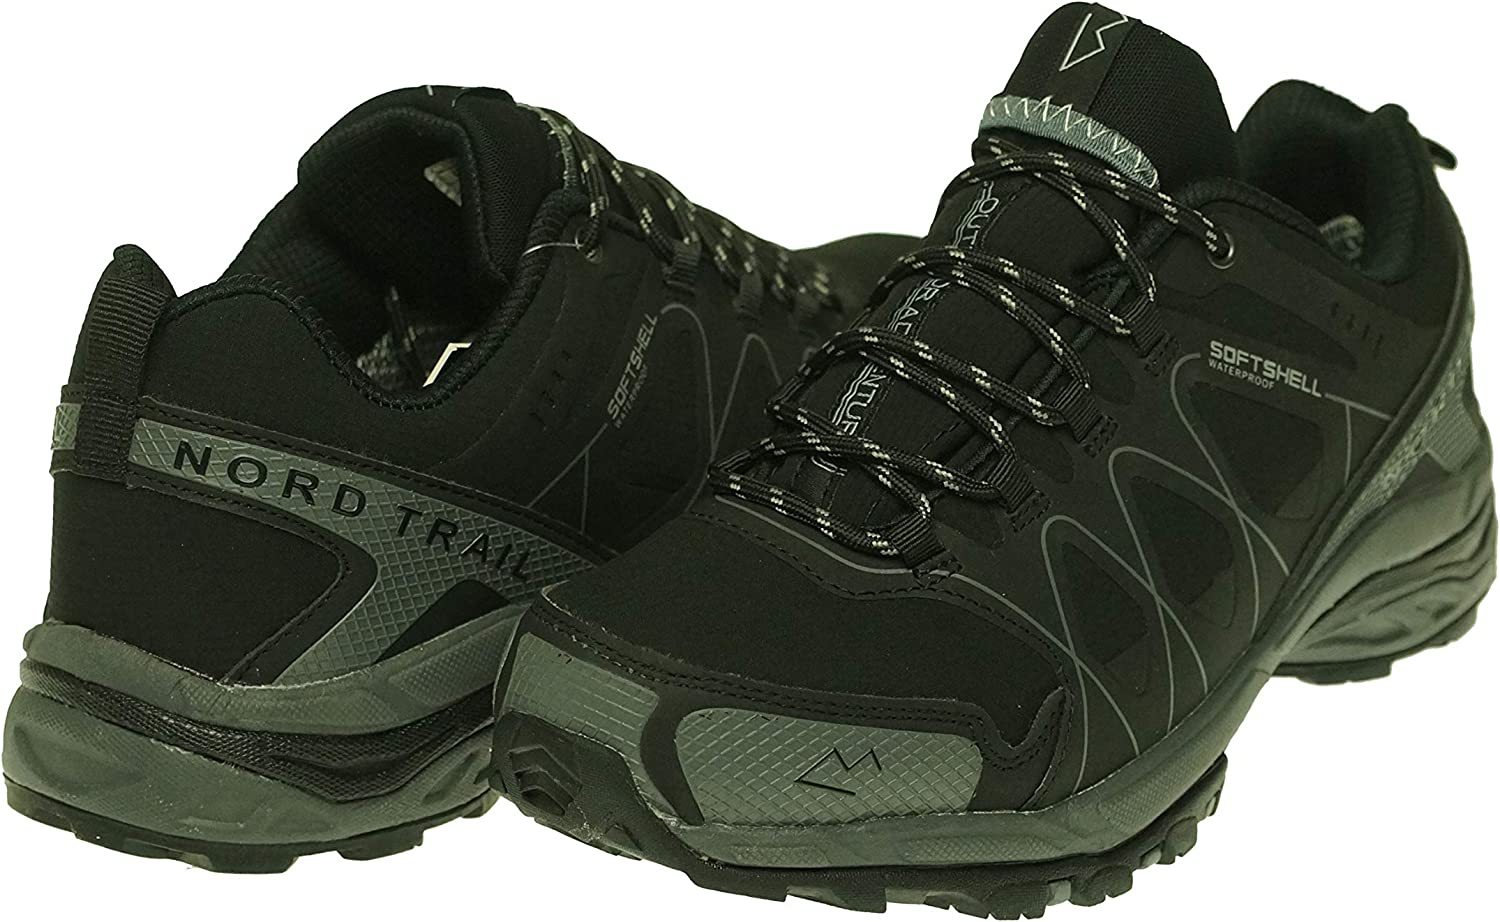 Nord Trail Men's Mount Hood Low Boots